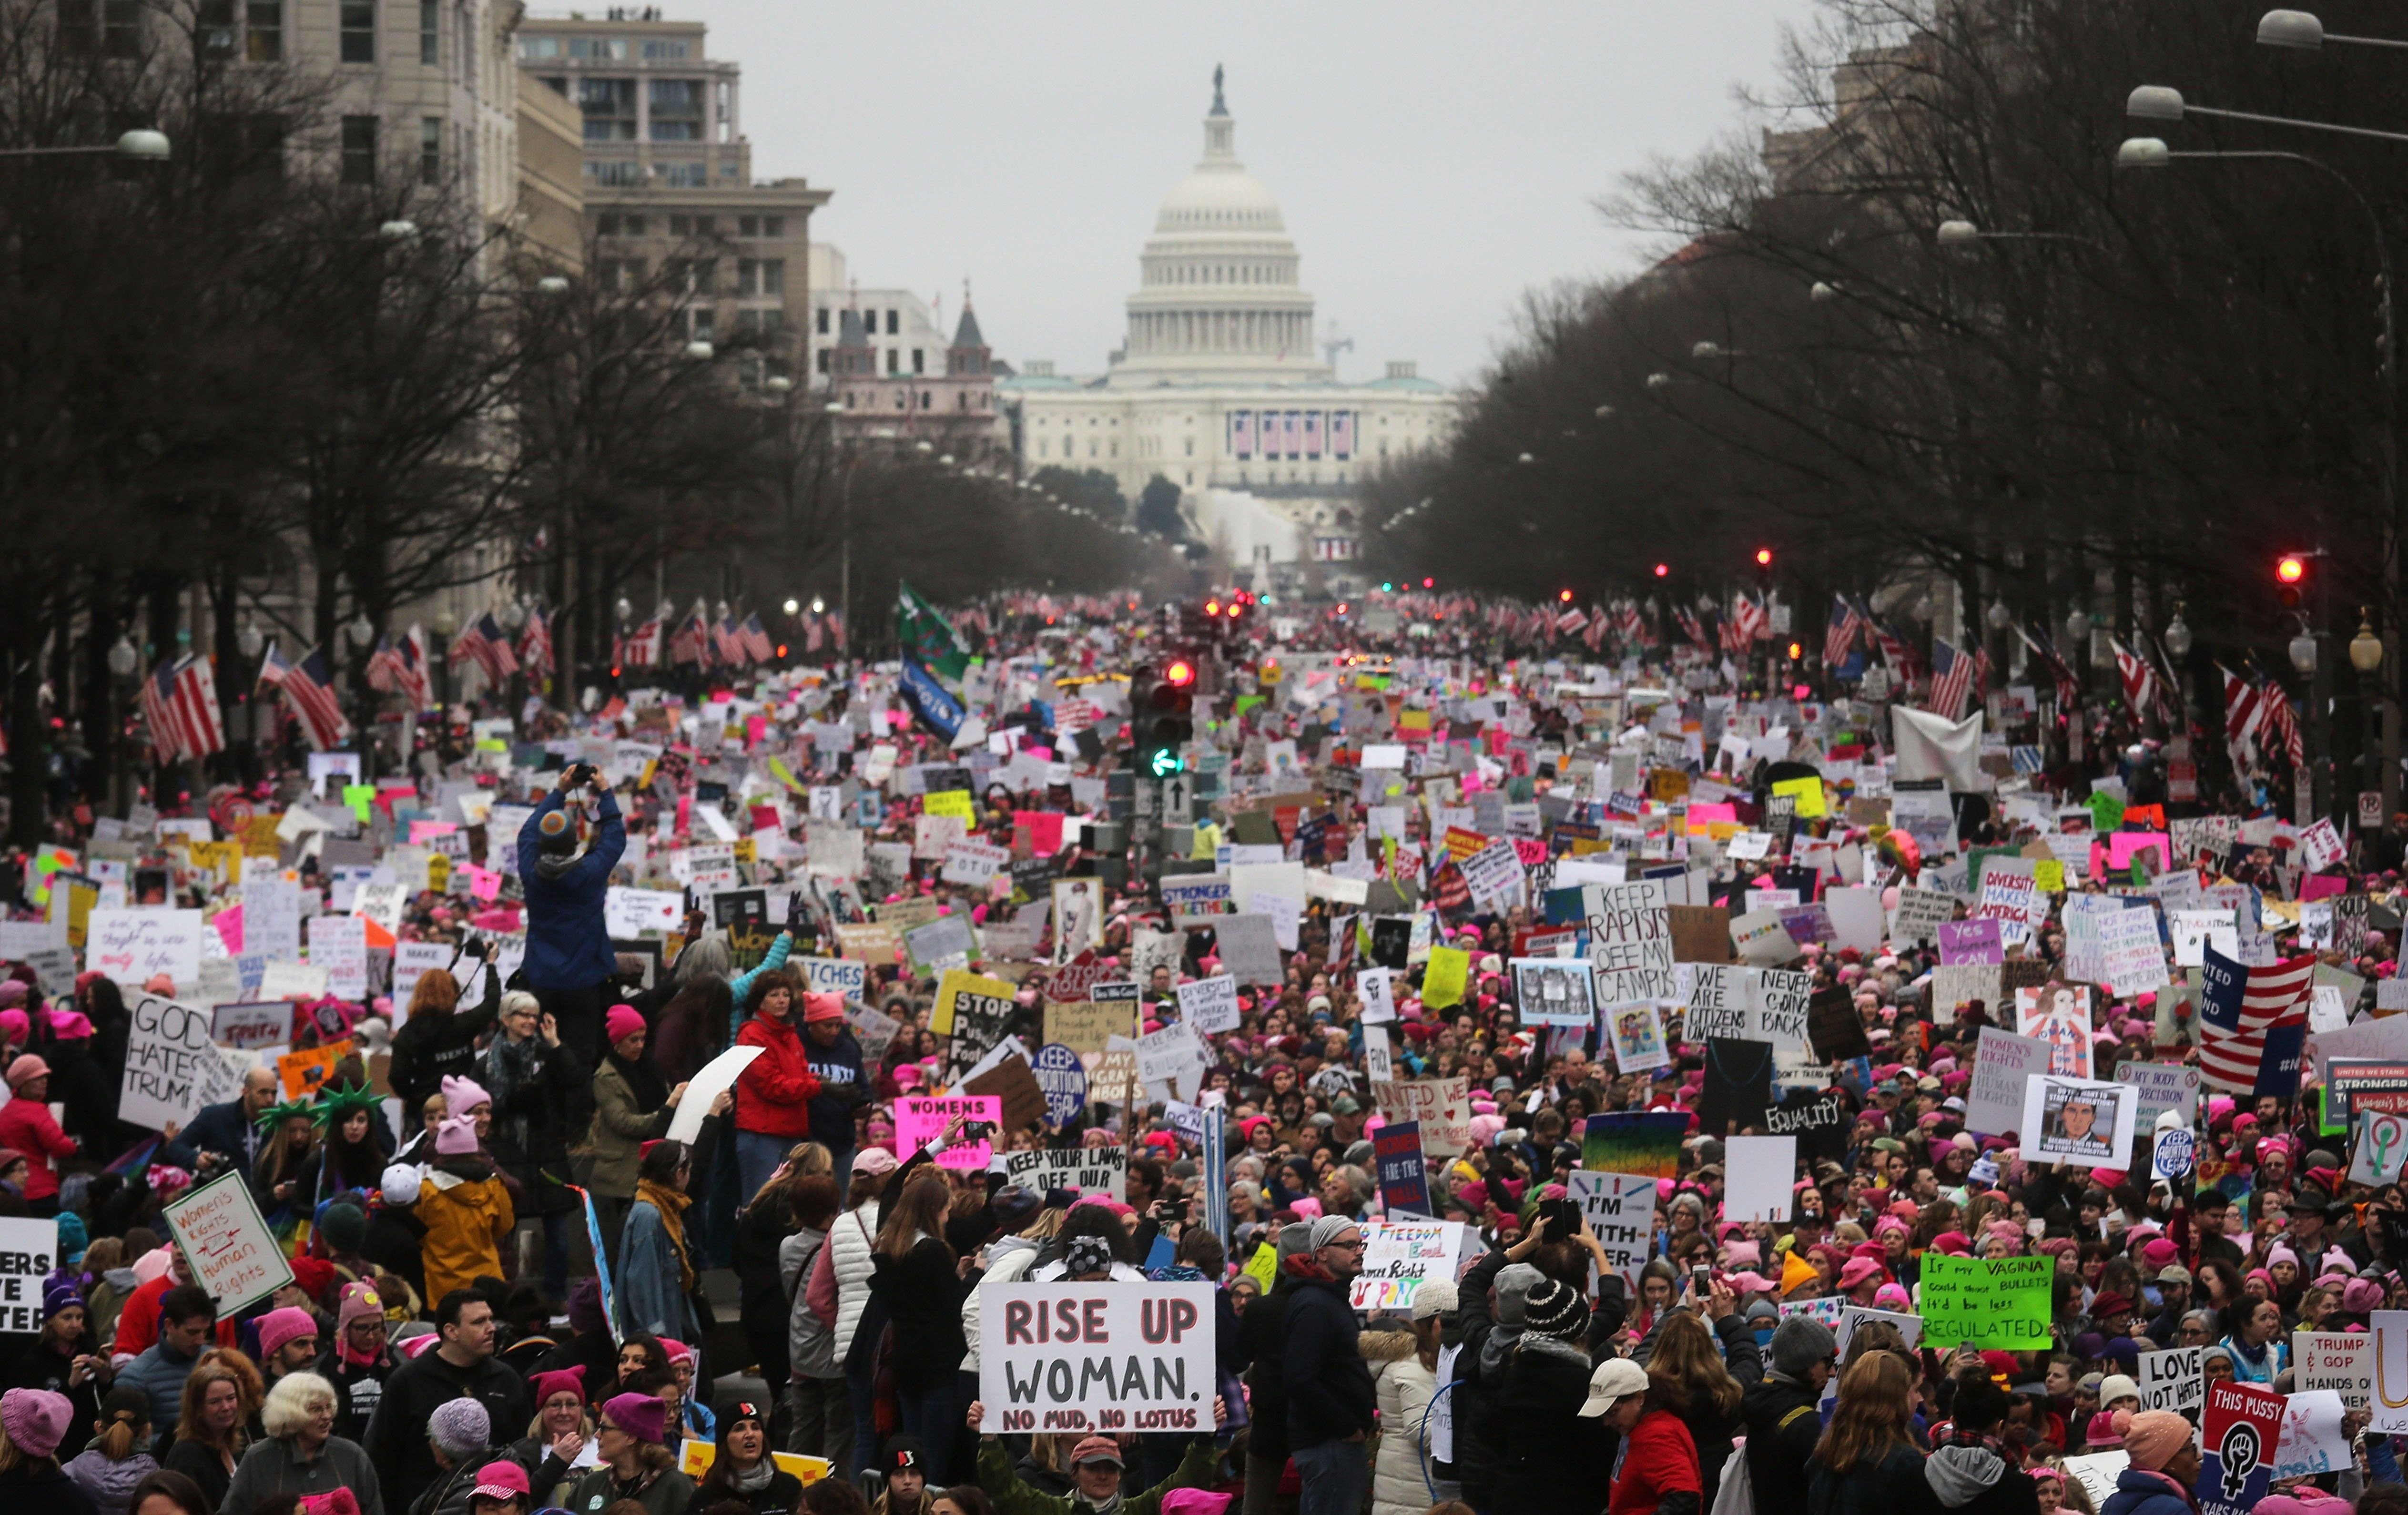 Protesters walk during the Women's March on Washington on Jan. 21, 2017, in Washington, DC.